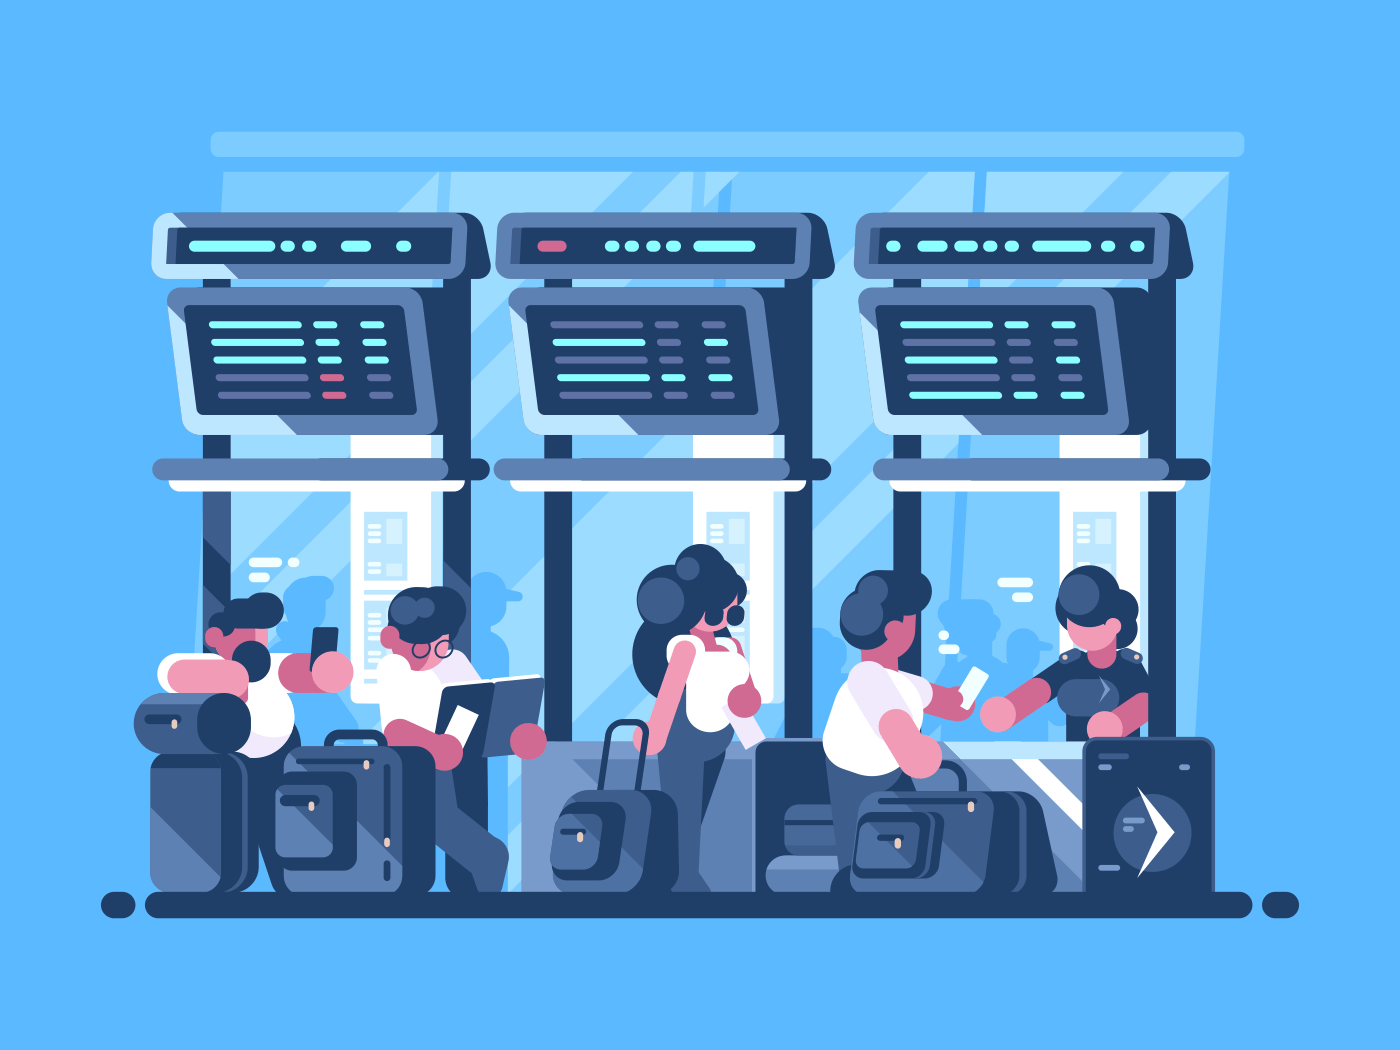 Checking and check-in of baggage for flight. Queue for registration. Vector illustration